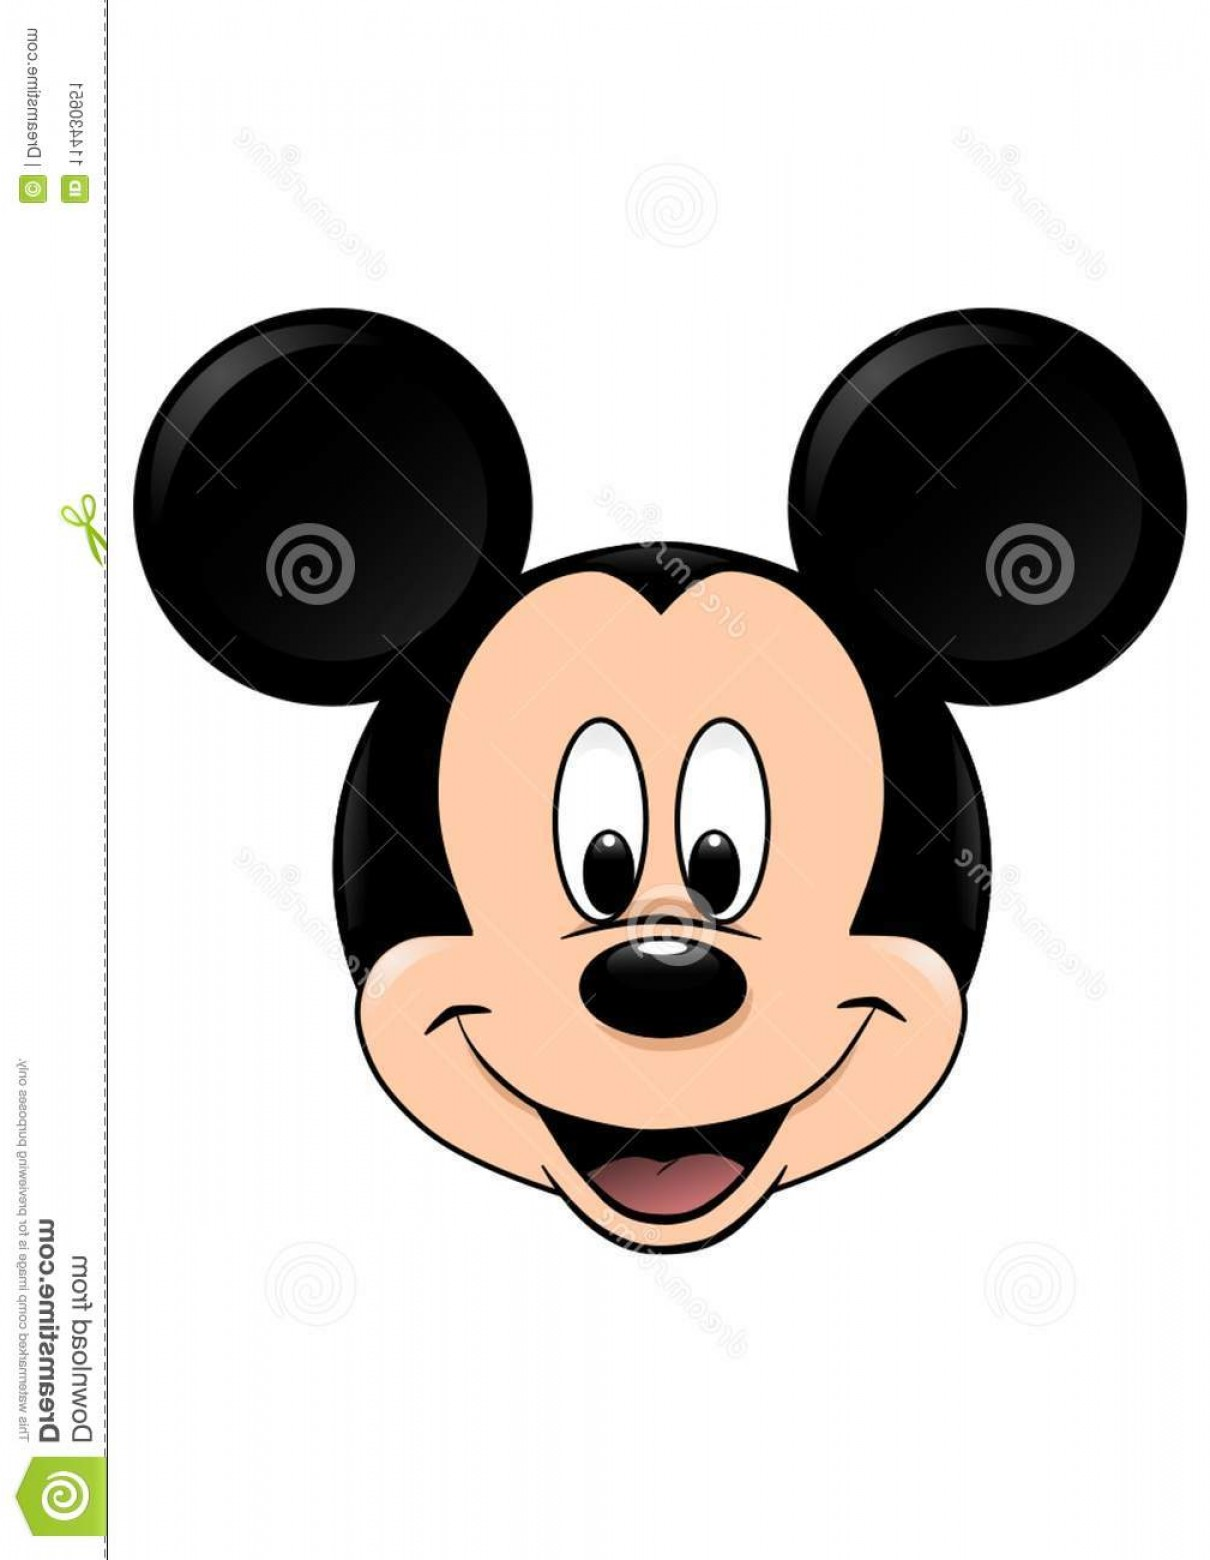 Vector Mickey Mouse Christmas: Disney Vector Illustration Mickey Mouse Isolated White Background Love Face Closeup Colored Character Who Smiles Big Image